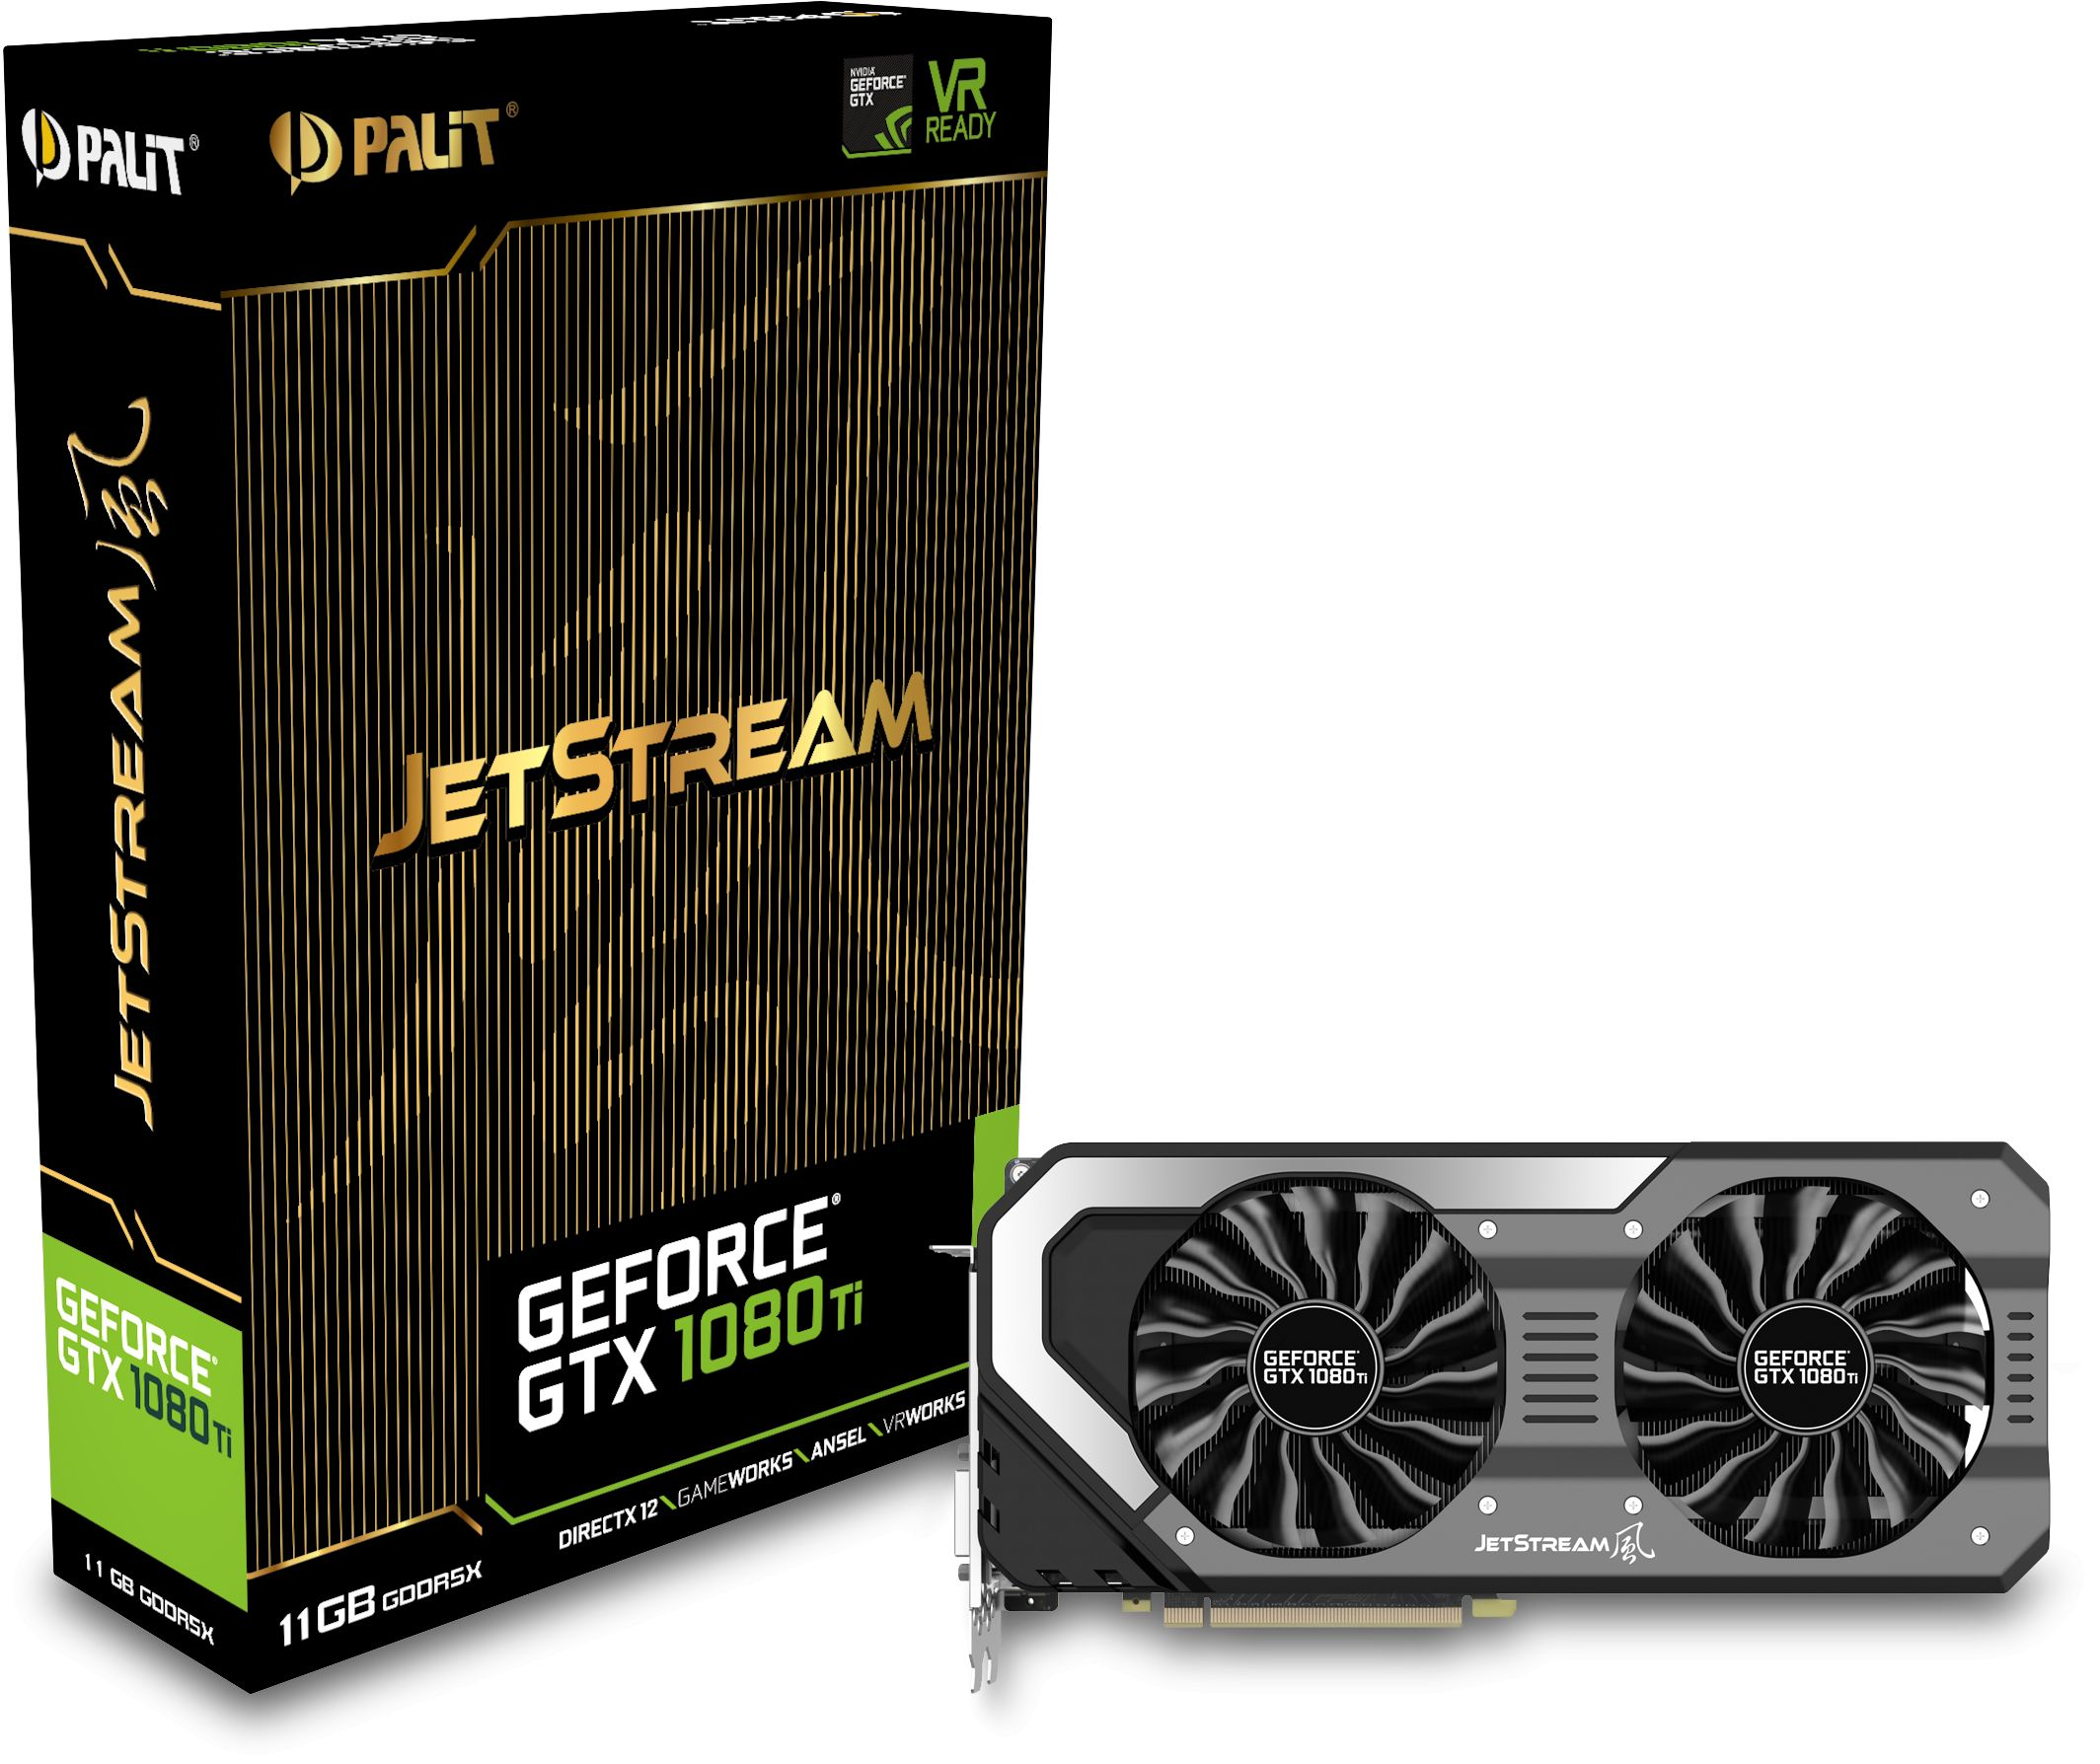 Geforce Gtx 1080 Ti Jetstream 11gb Gddr5x Neb108t015lc 1020j Gaming Technologies The Palit Series Guarantee Gamers Cutting Edge Performance And A Explosive New Experience